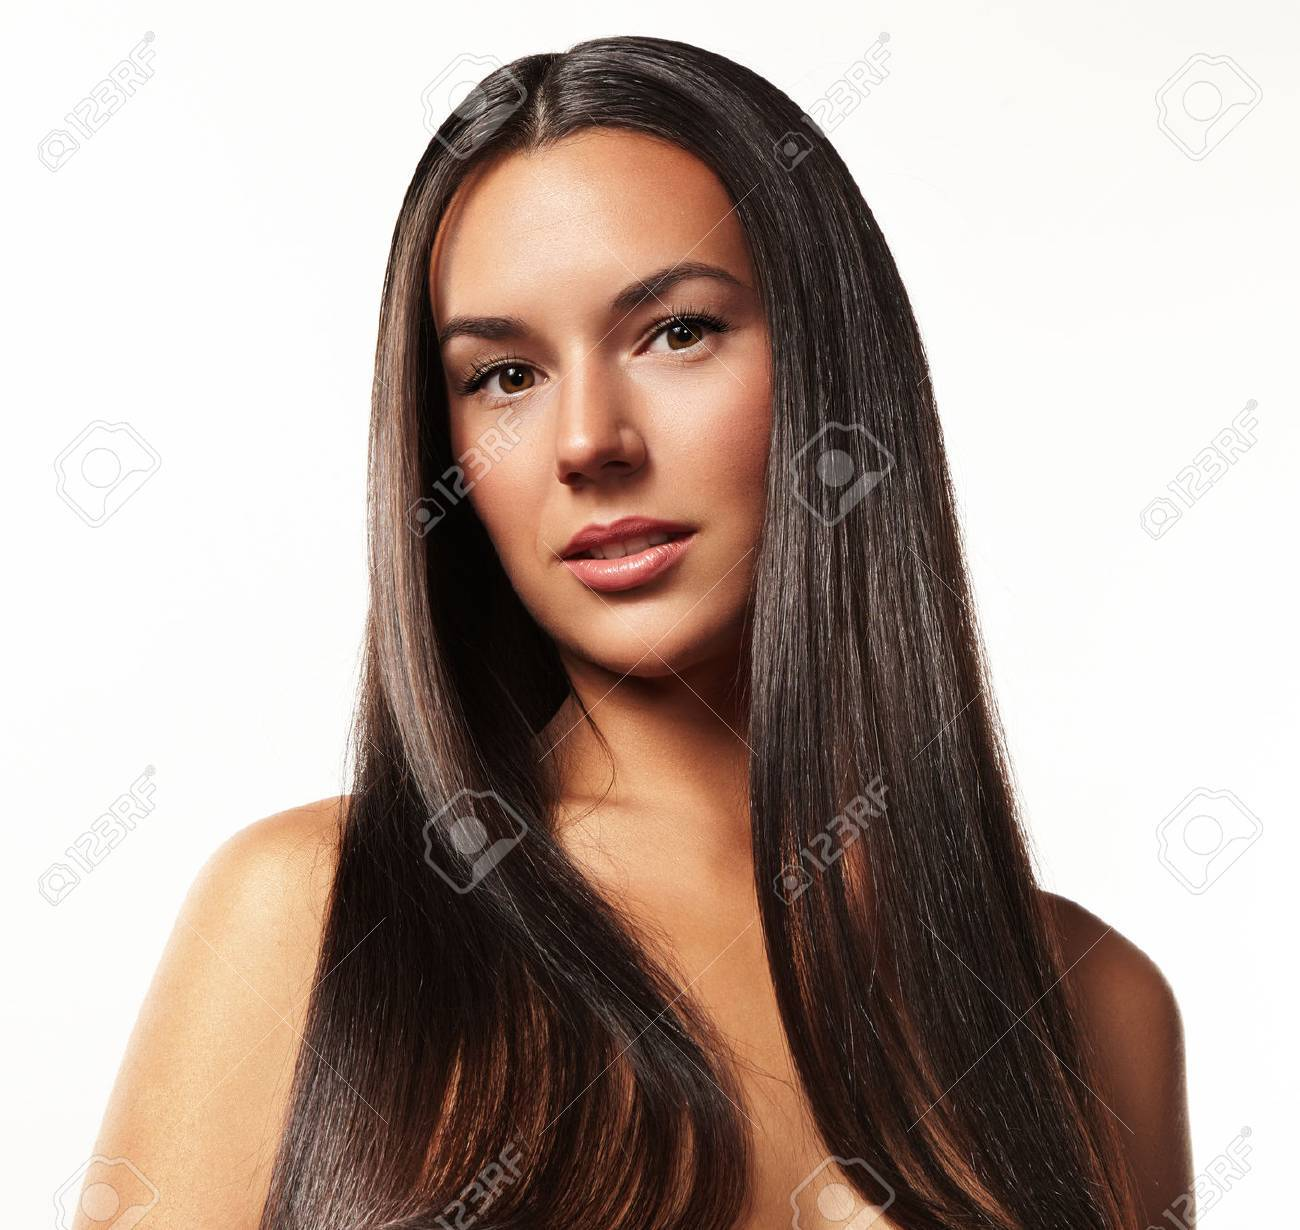 portrait of a beauty woman with a long hair - 34674682